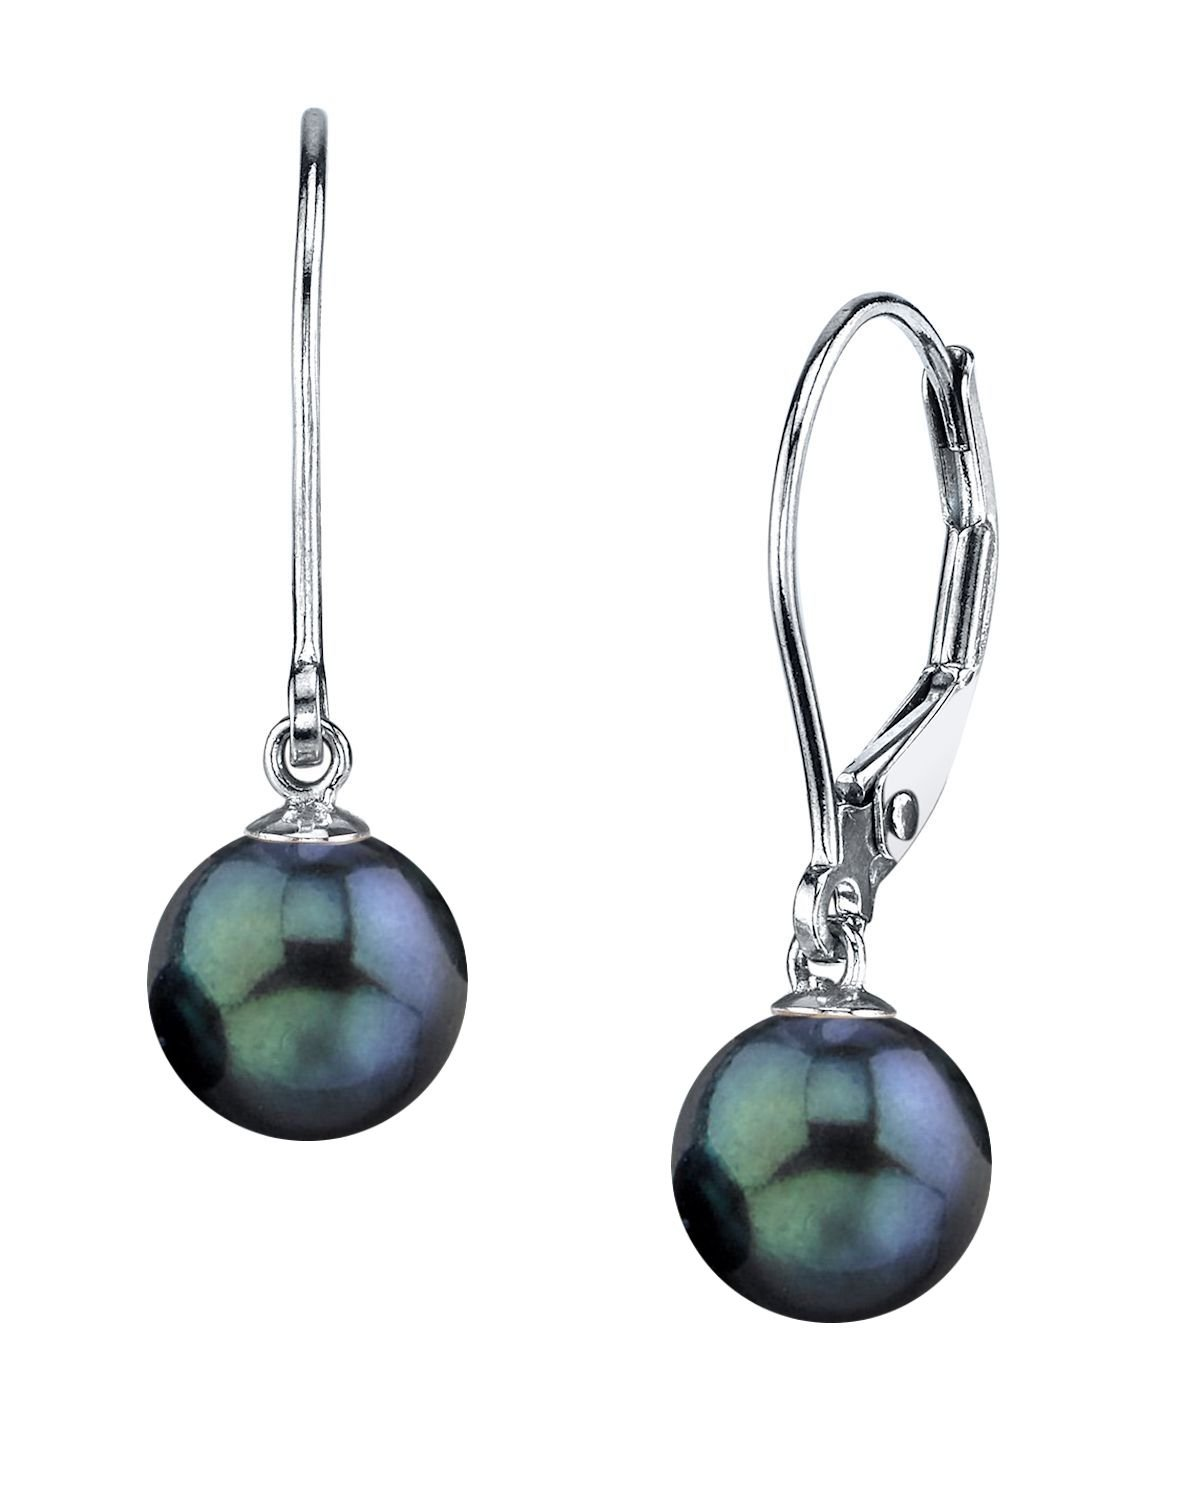 14K Gold Round Black Akoya High Luster Cultured Pearl Leverback Earrings - AAA Quality